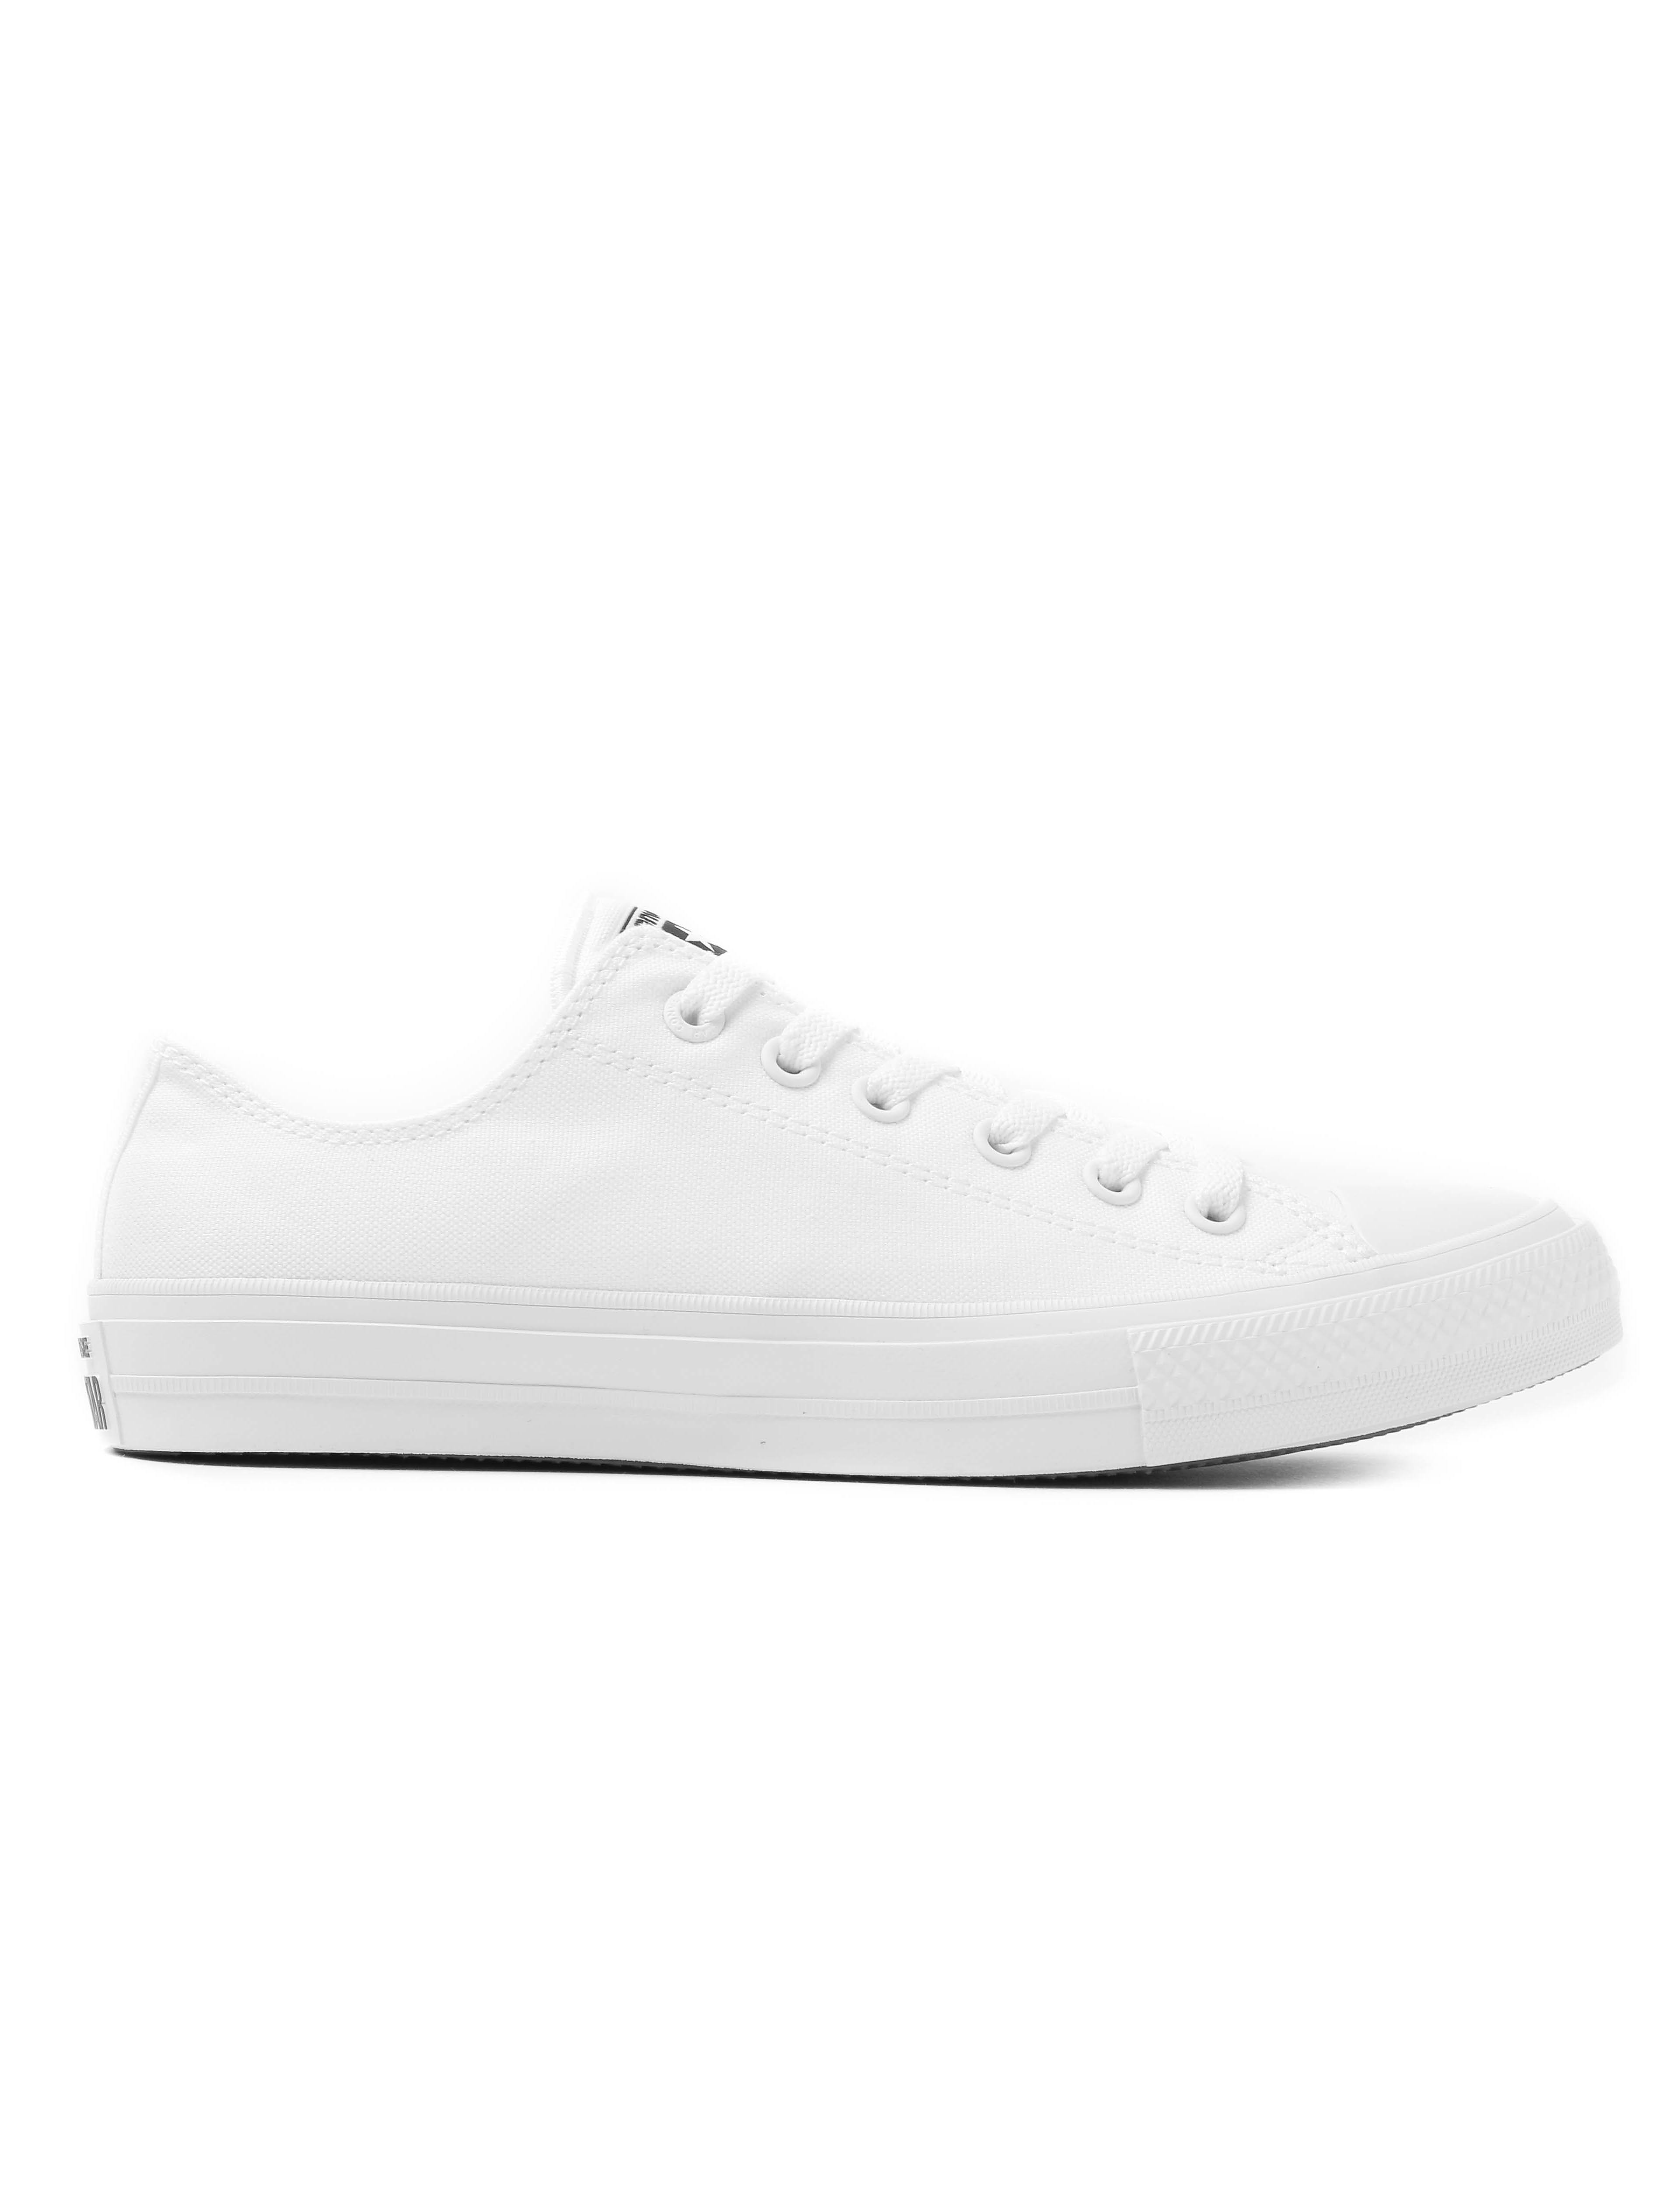 Converse Men's Chuck Taylor All Star II OX Trainers - White